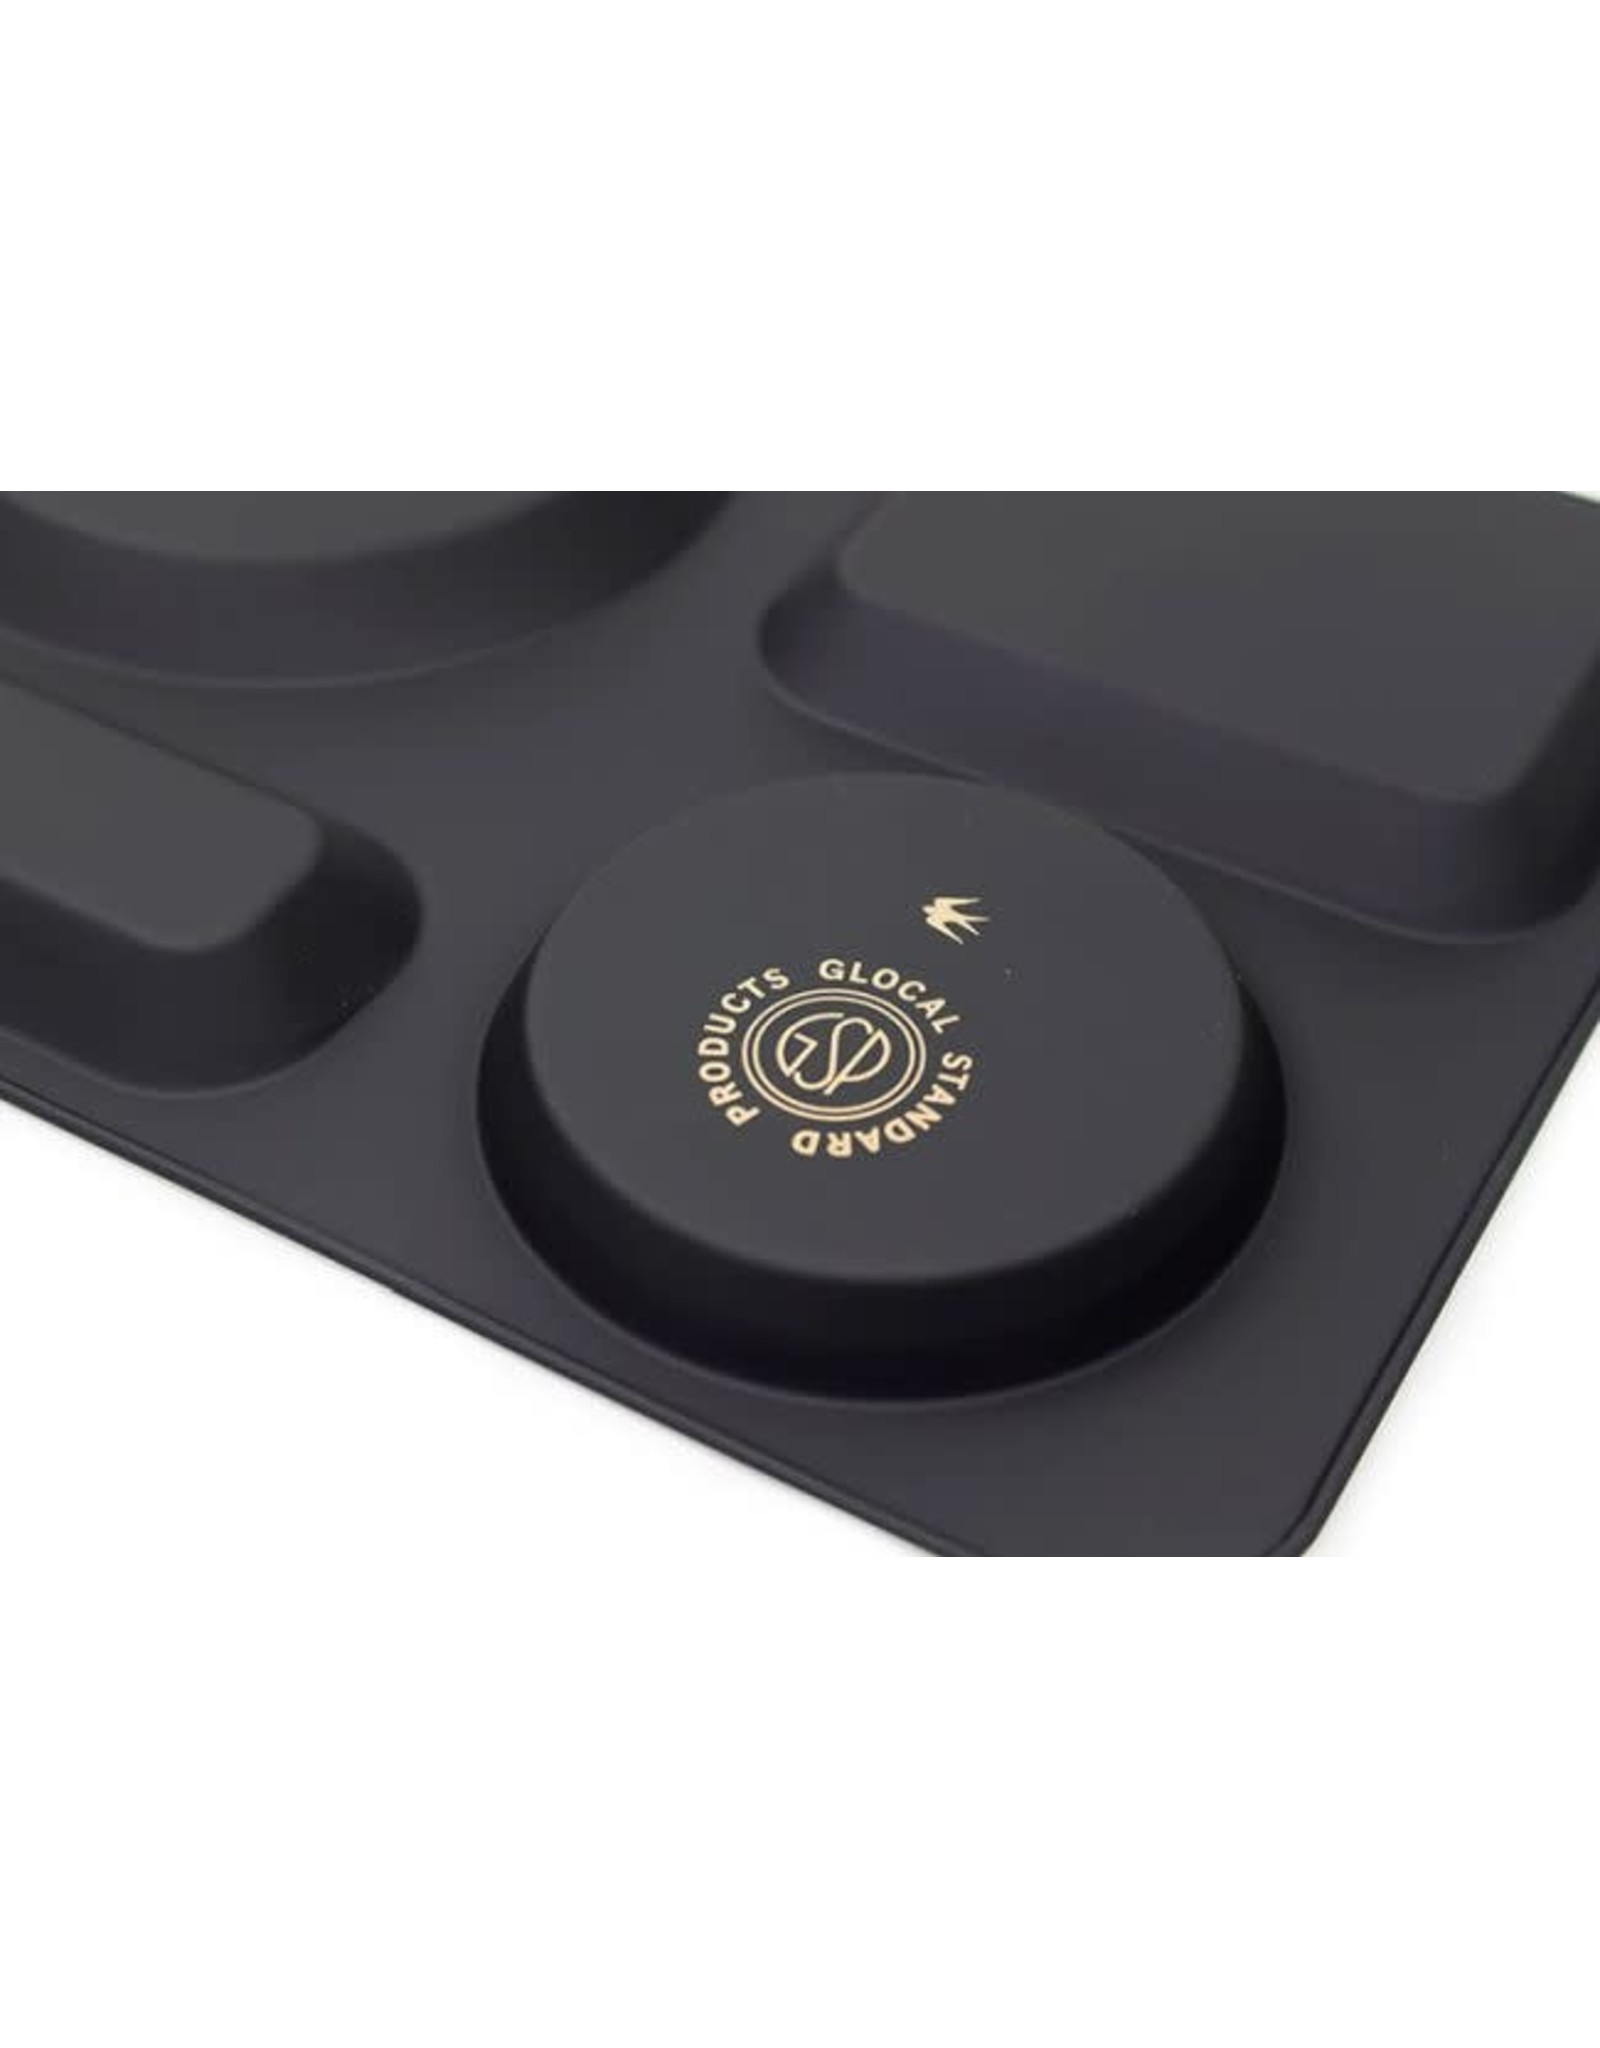 GSP GSP TSUBAME CAFE TRAY COLORS BLACK